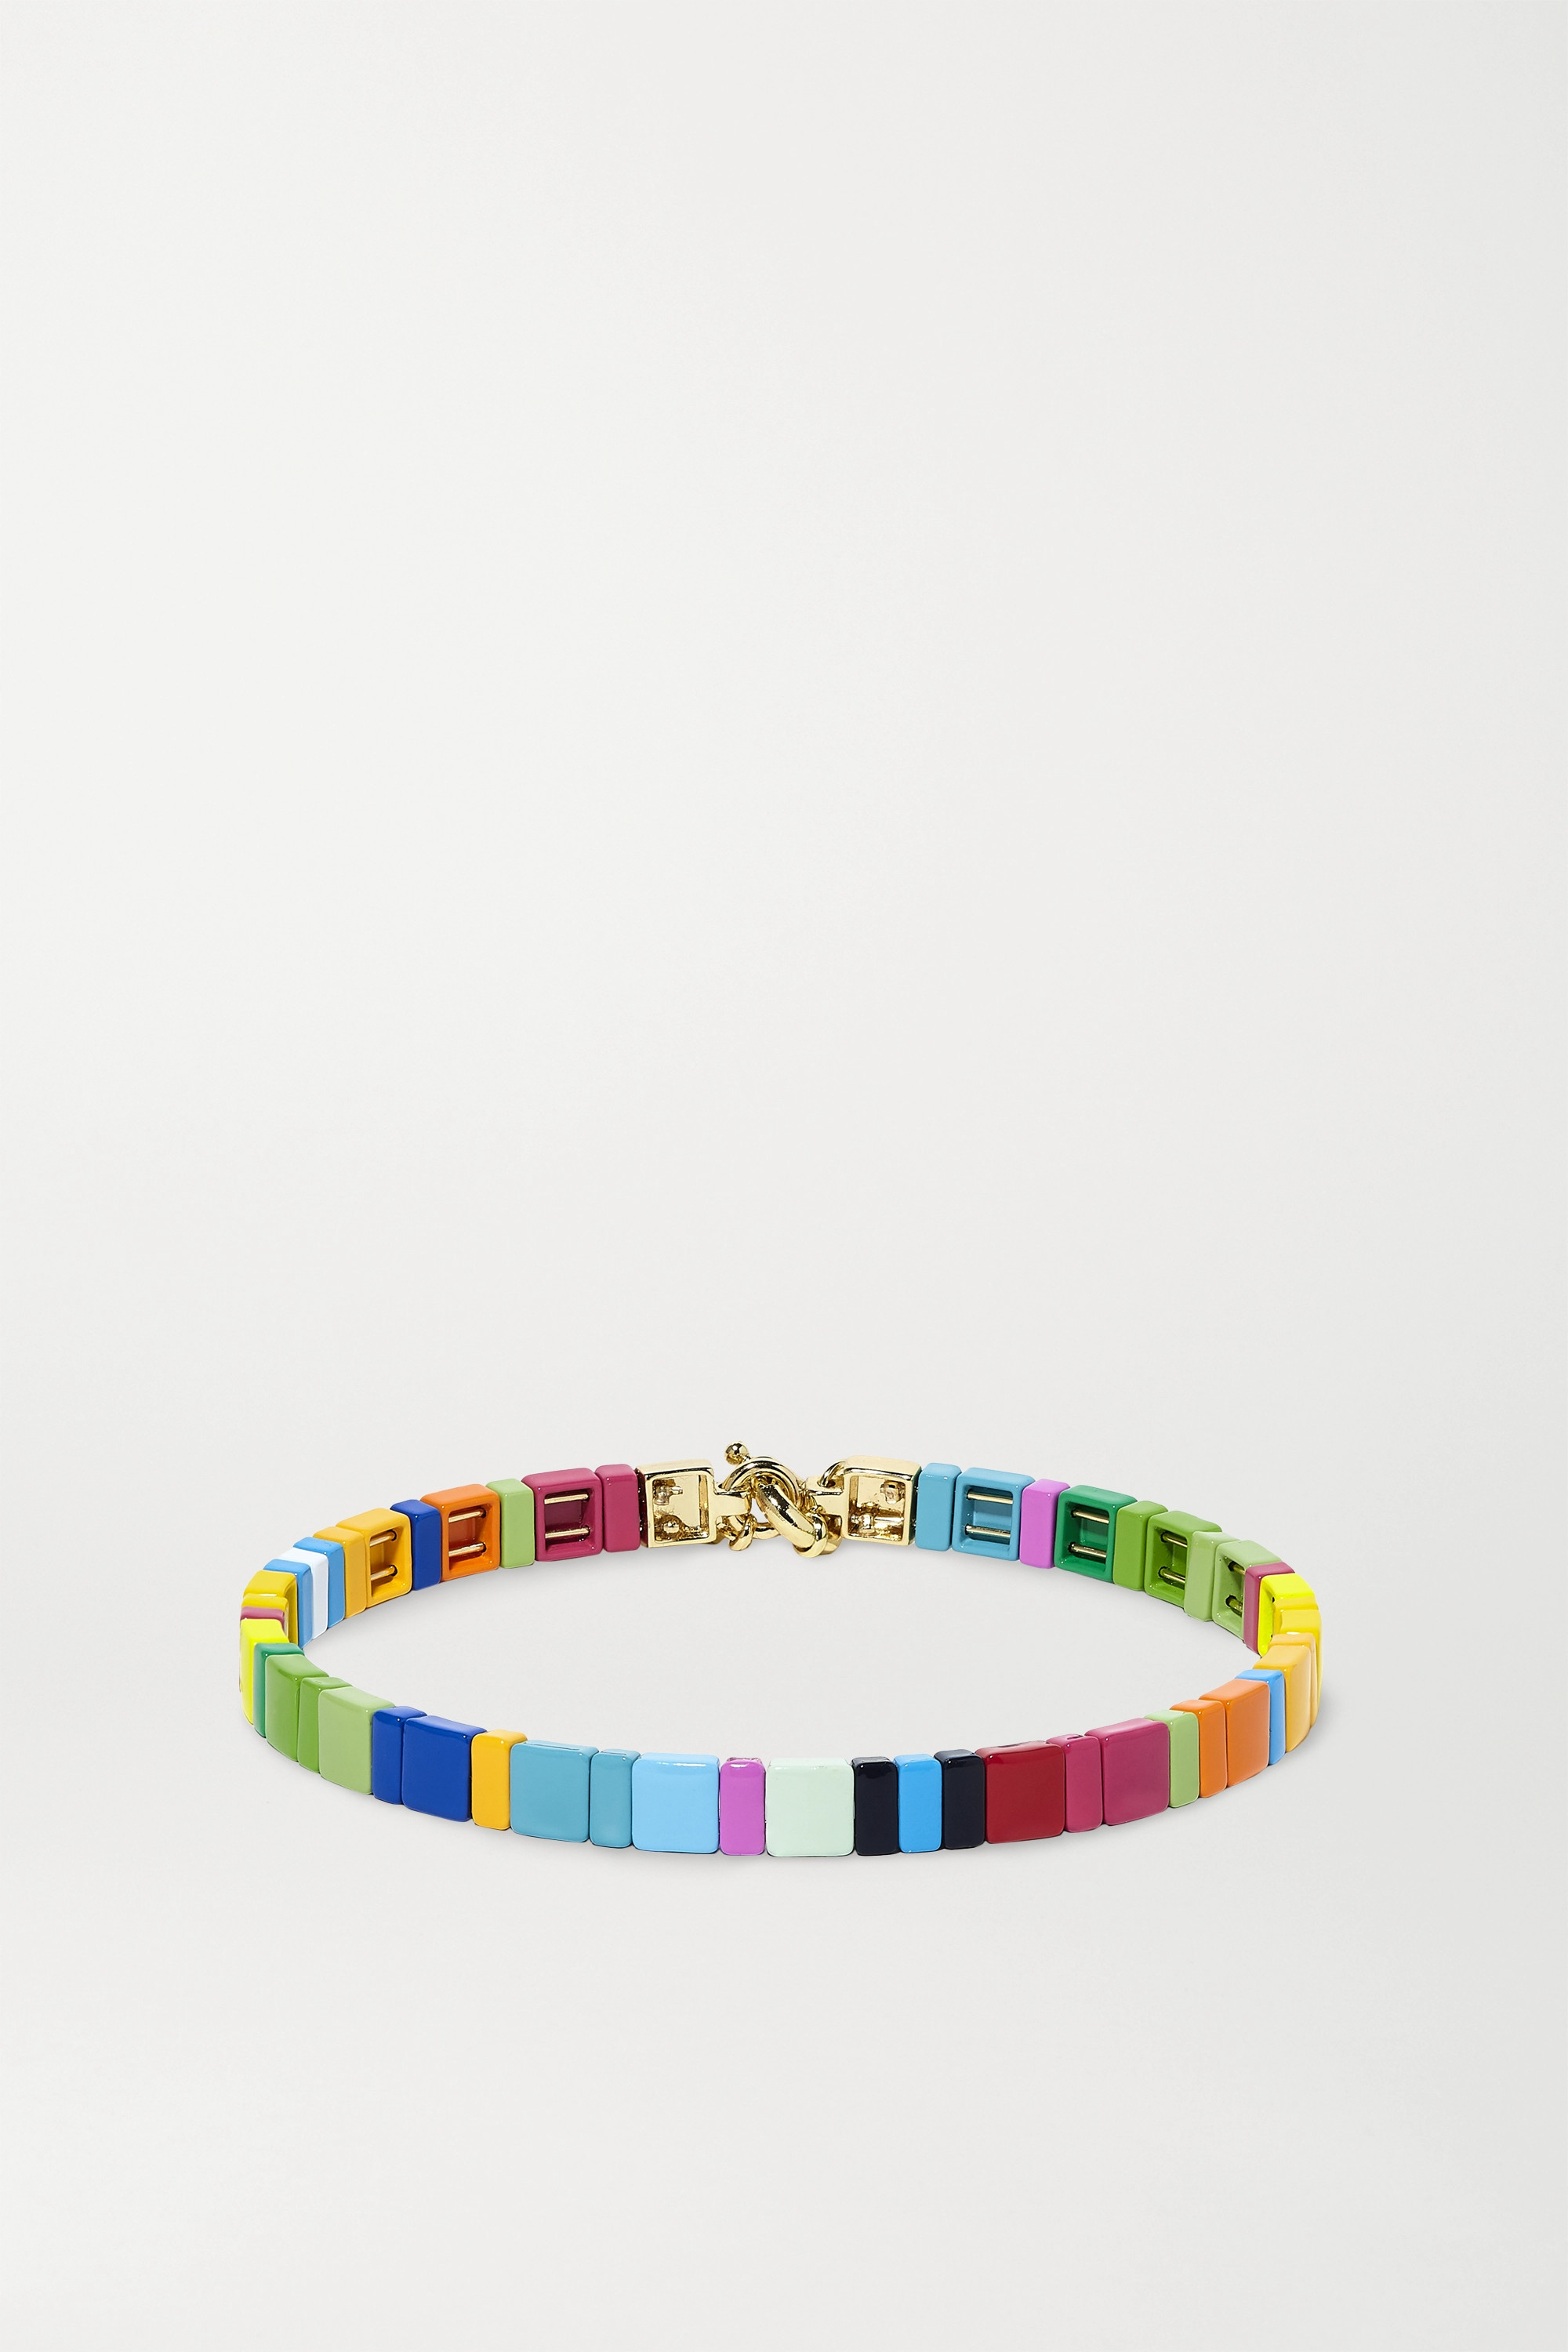 Roxanne Assoulin - Starburst enamel and gold-tone choker